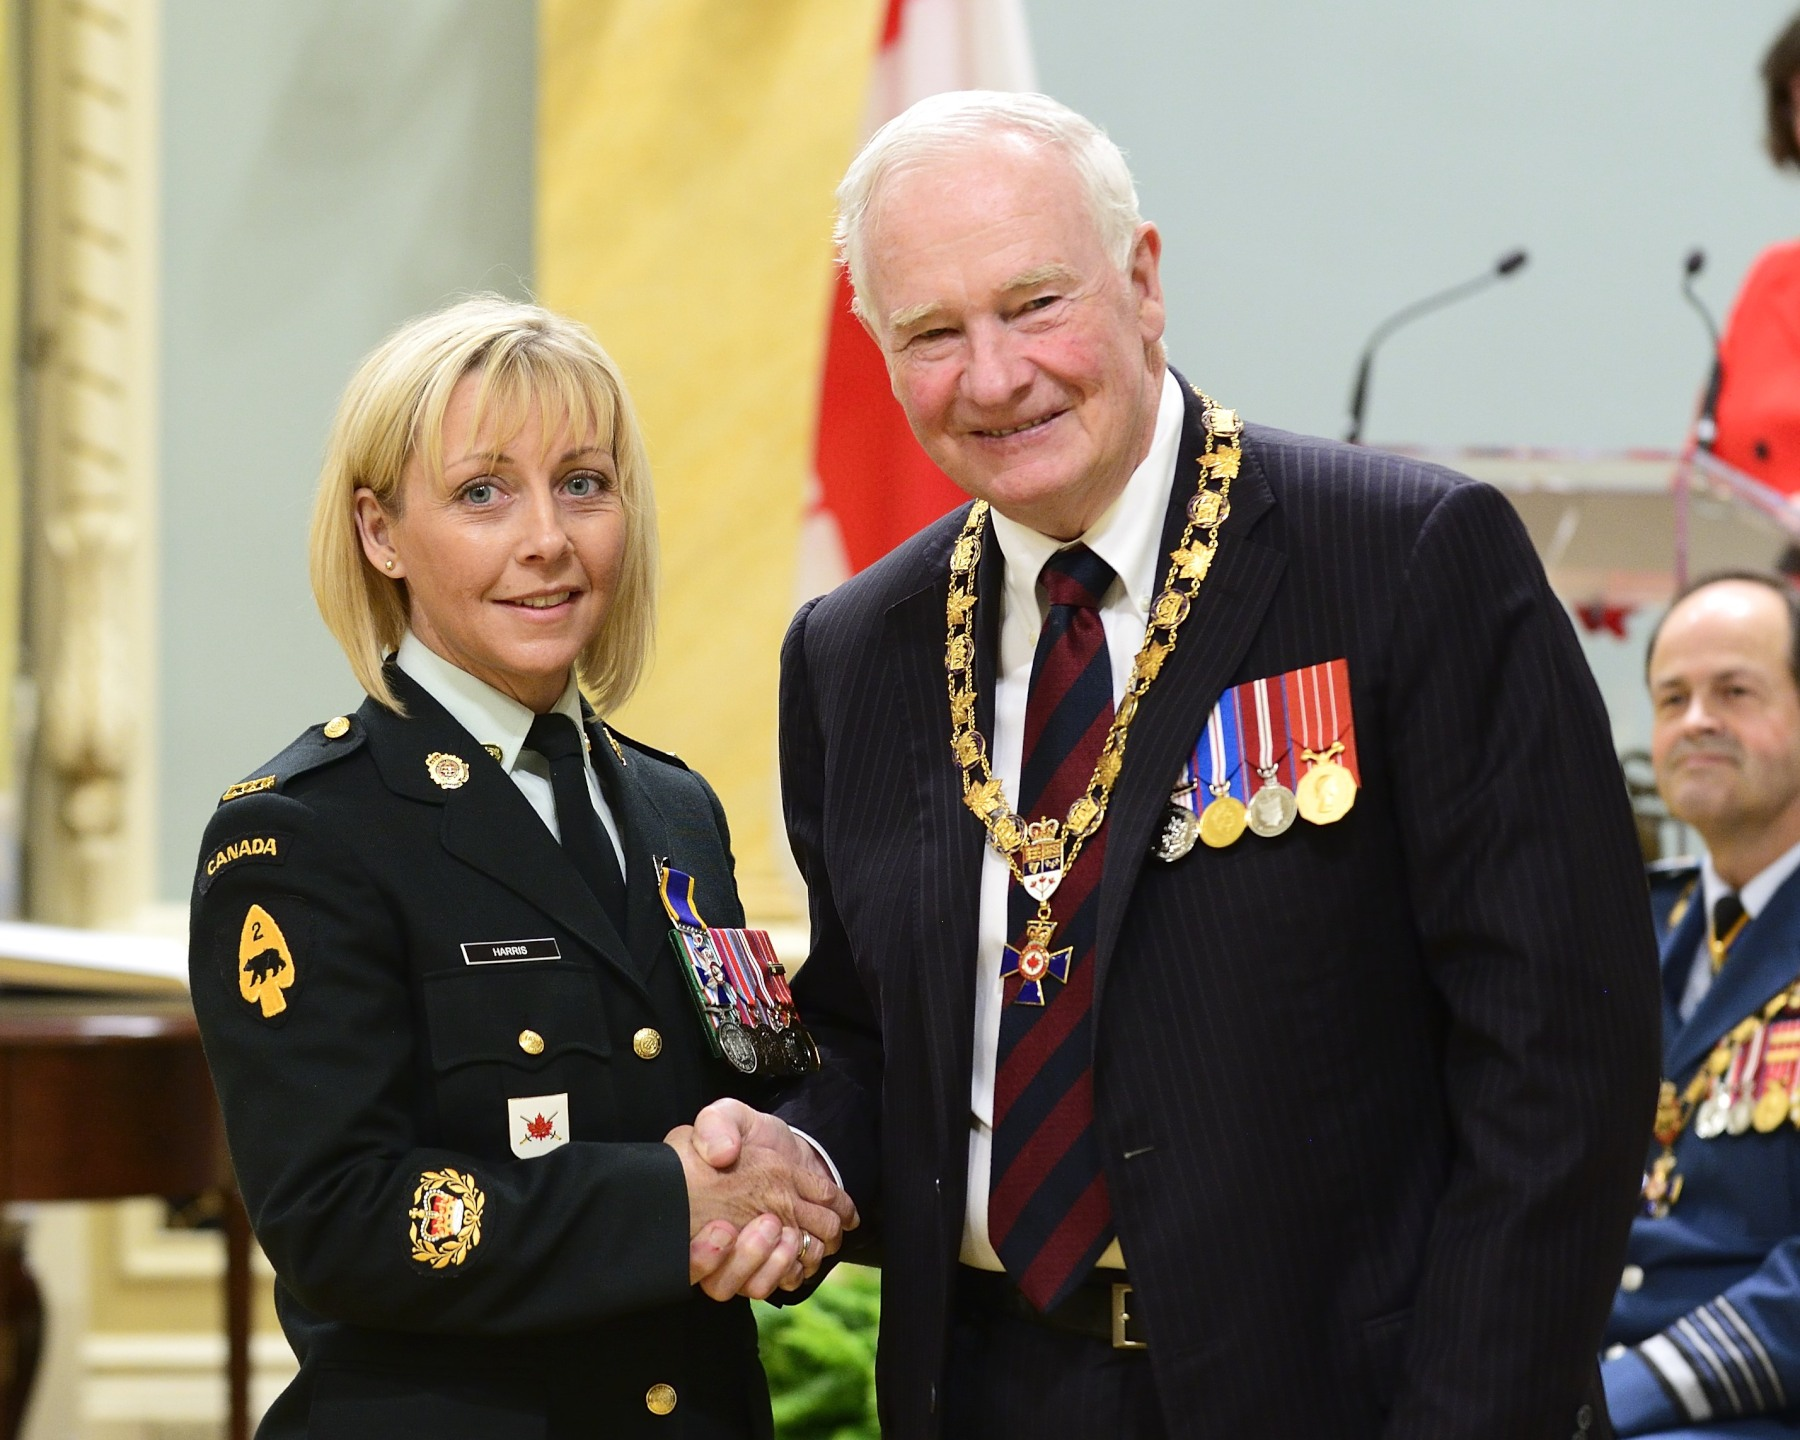 His Excellency presented the Order of Military Merit at the Member level (M.M.M.) to Master Warrant Officer Crystal Harris, M.M.M., C.D., 4th Canadian Division Training Centre, Meaford, Ontario.